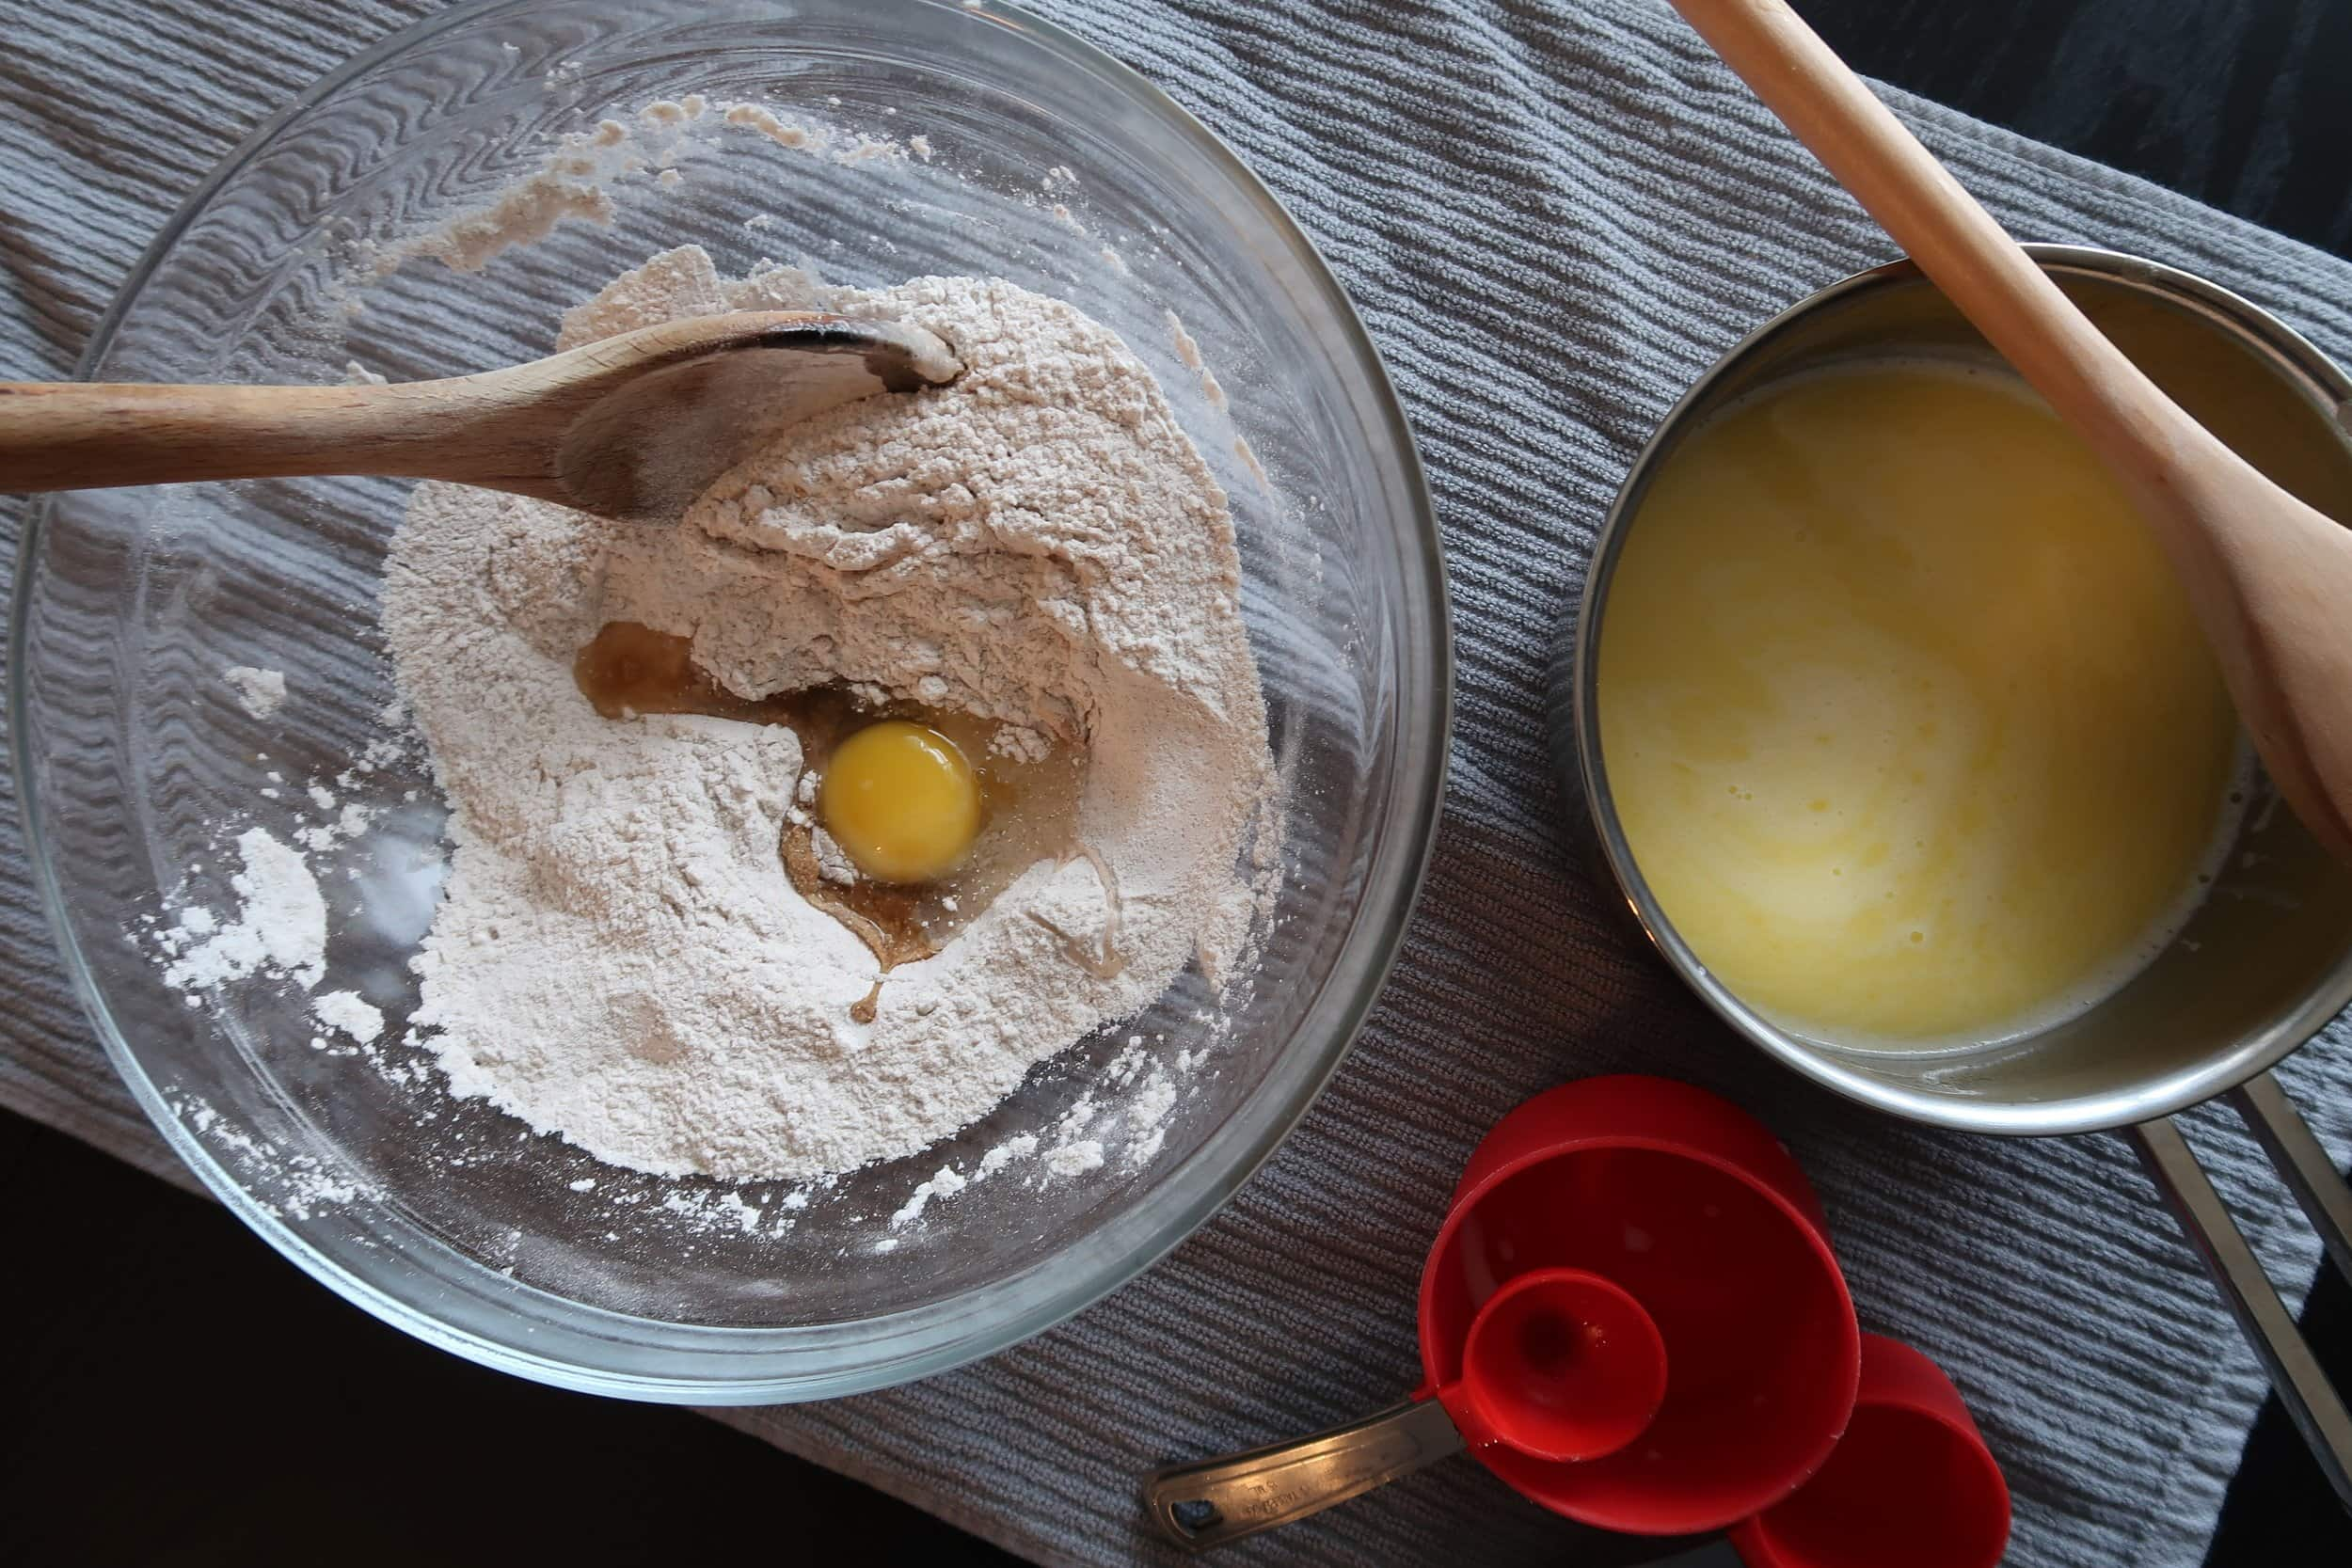 Eggs being added to the dry ingredients for cinnamon roll dough.